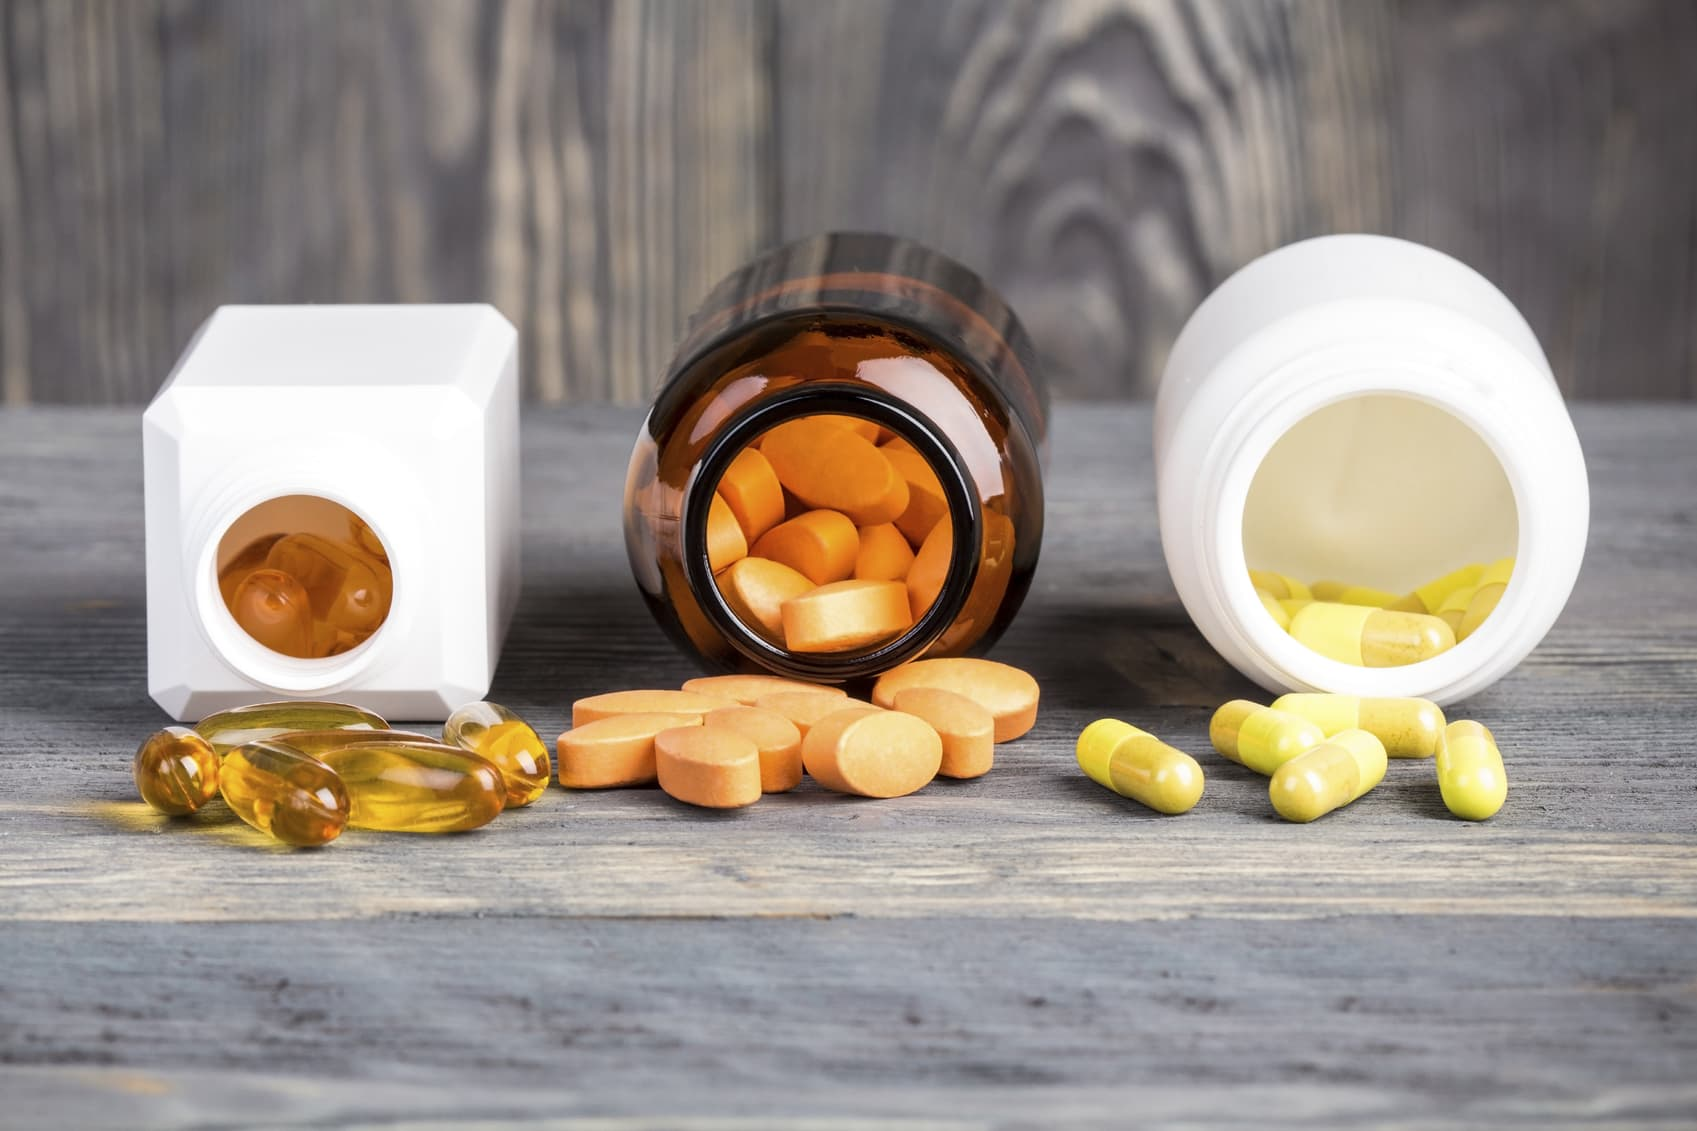 Drugs vs. Supplements: What's the Difference? - DrugAbuse.com